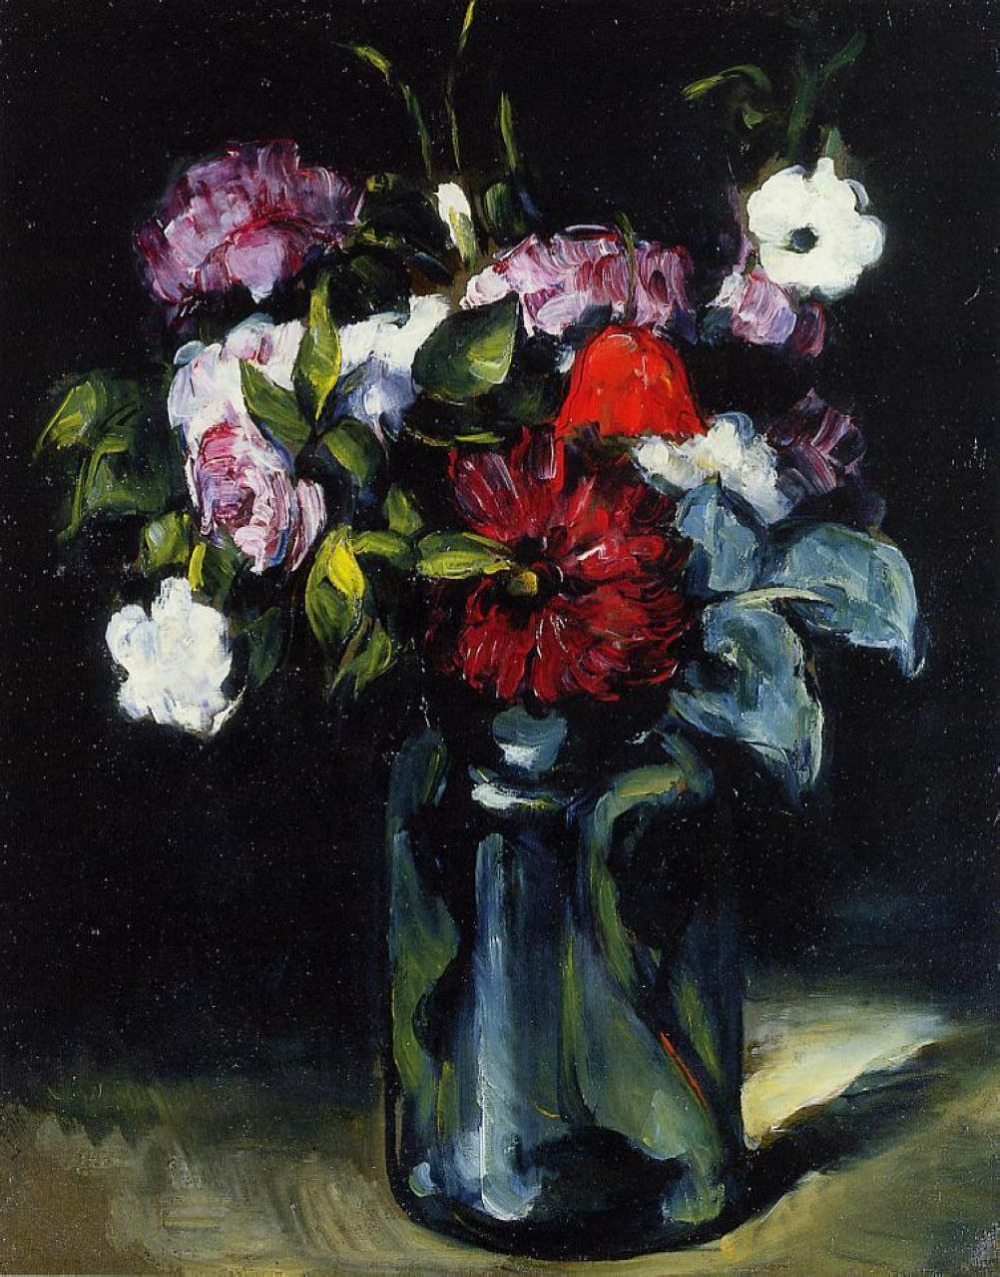 Handmade Oil Painting Reproduction on linen canvas,flowers-in-a-vase-1873 BY paul Cezanne ,Free Shipping ,TOP qualityHandmade Oil Painting Reproduction on linen canvas,flowers-in-a-vase-1873 BY paul Cezanne ,Free Shipping ,TOP quality